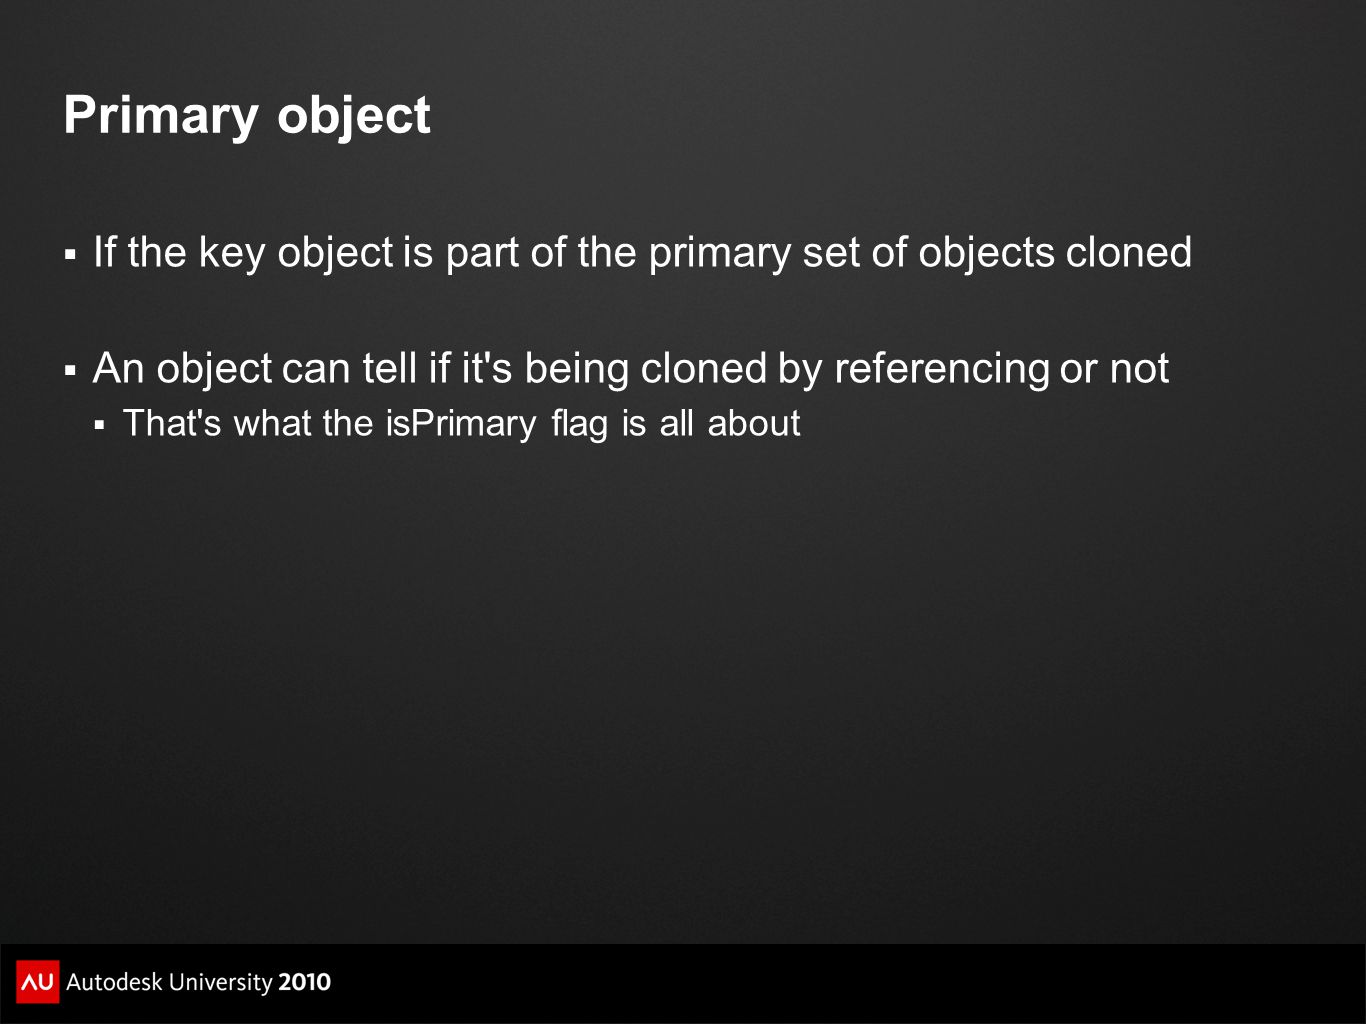 Primary object If the key object is part of the primary set of objects cloned. An object can tell if it s being cloned by referencing or not.